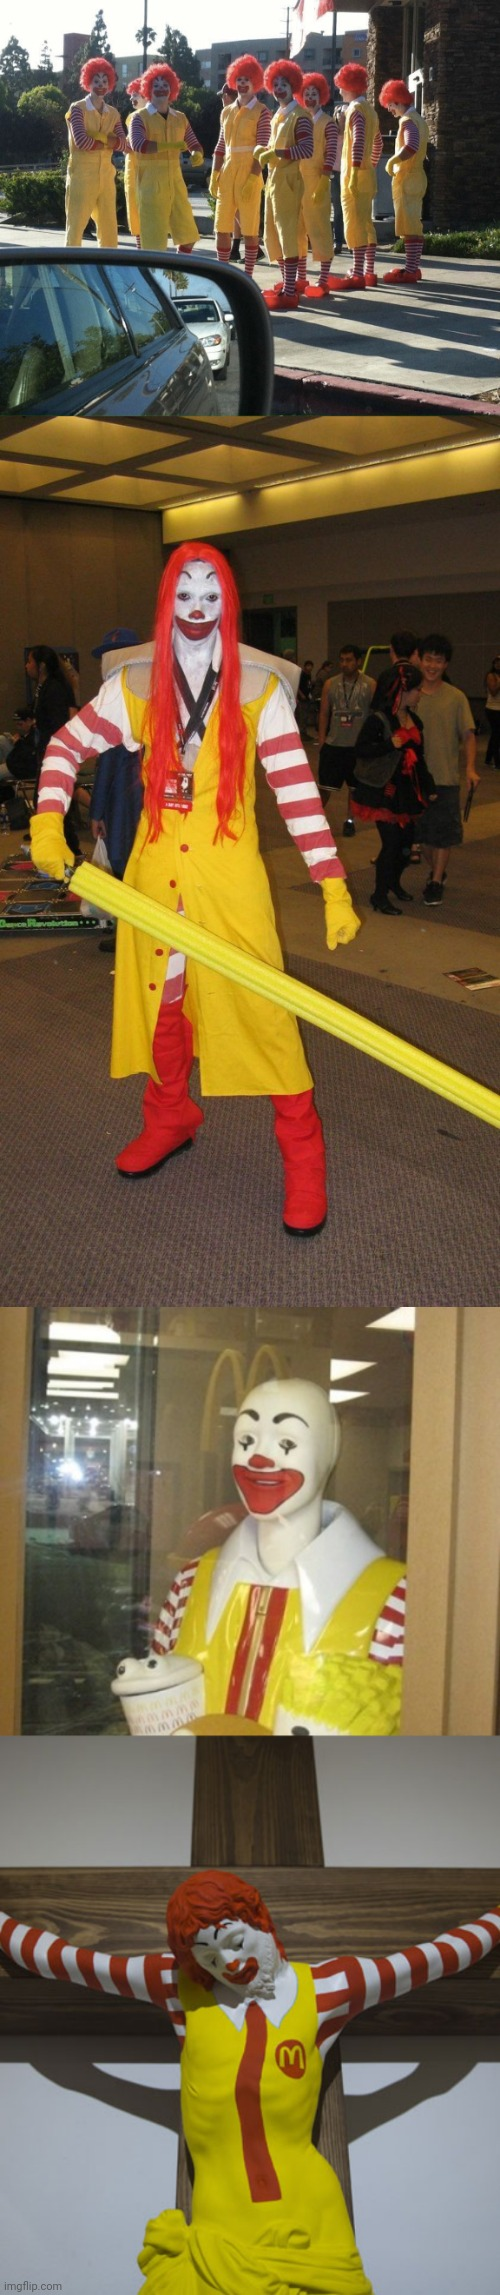 image tagged in memes,ronald mcdonald,cursed image,funny | made w/ Imgflip meme maker